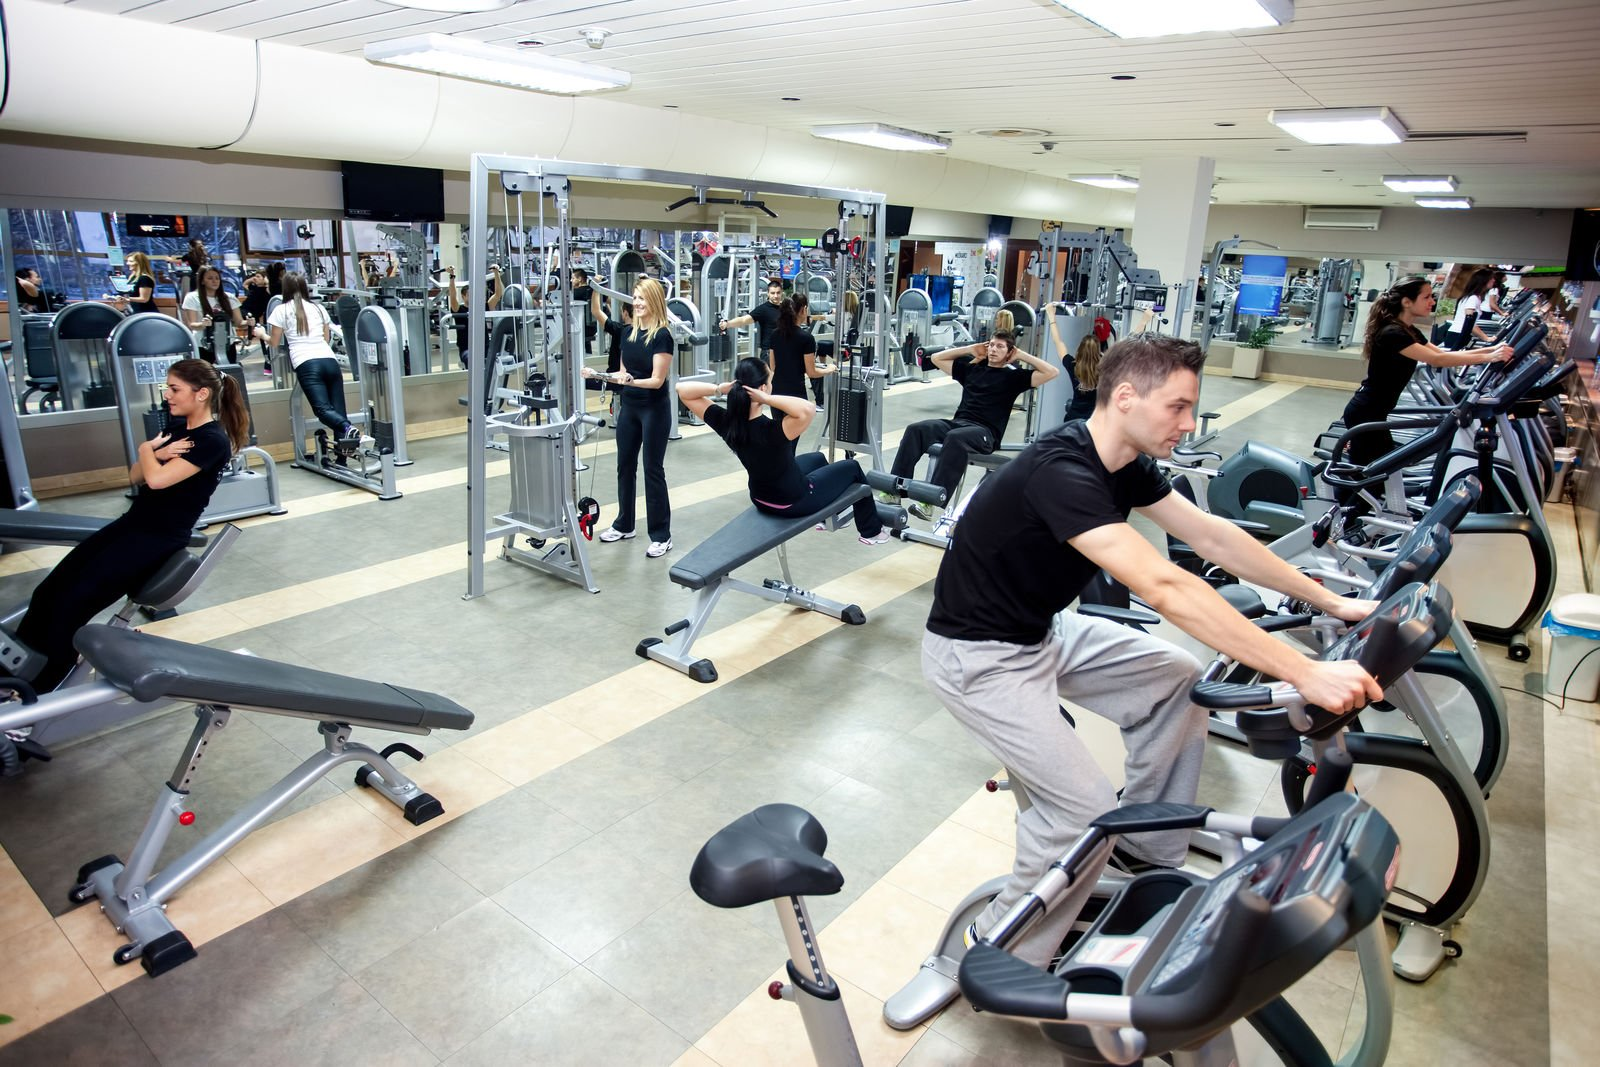 The Best Types of Exercise Equipment Money Can Buy